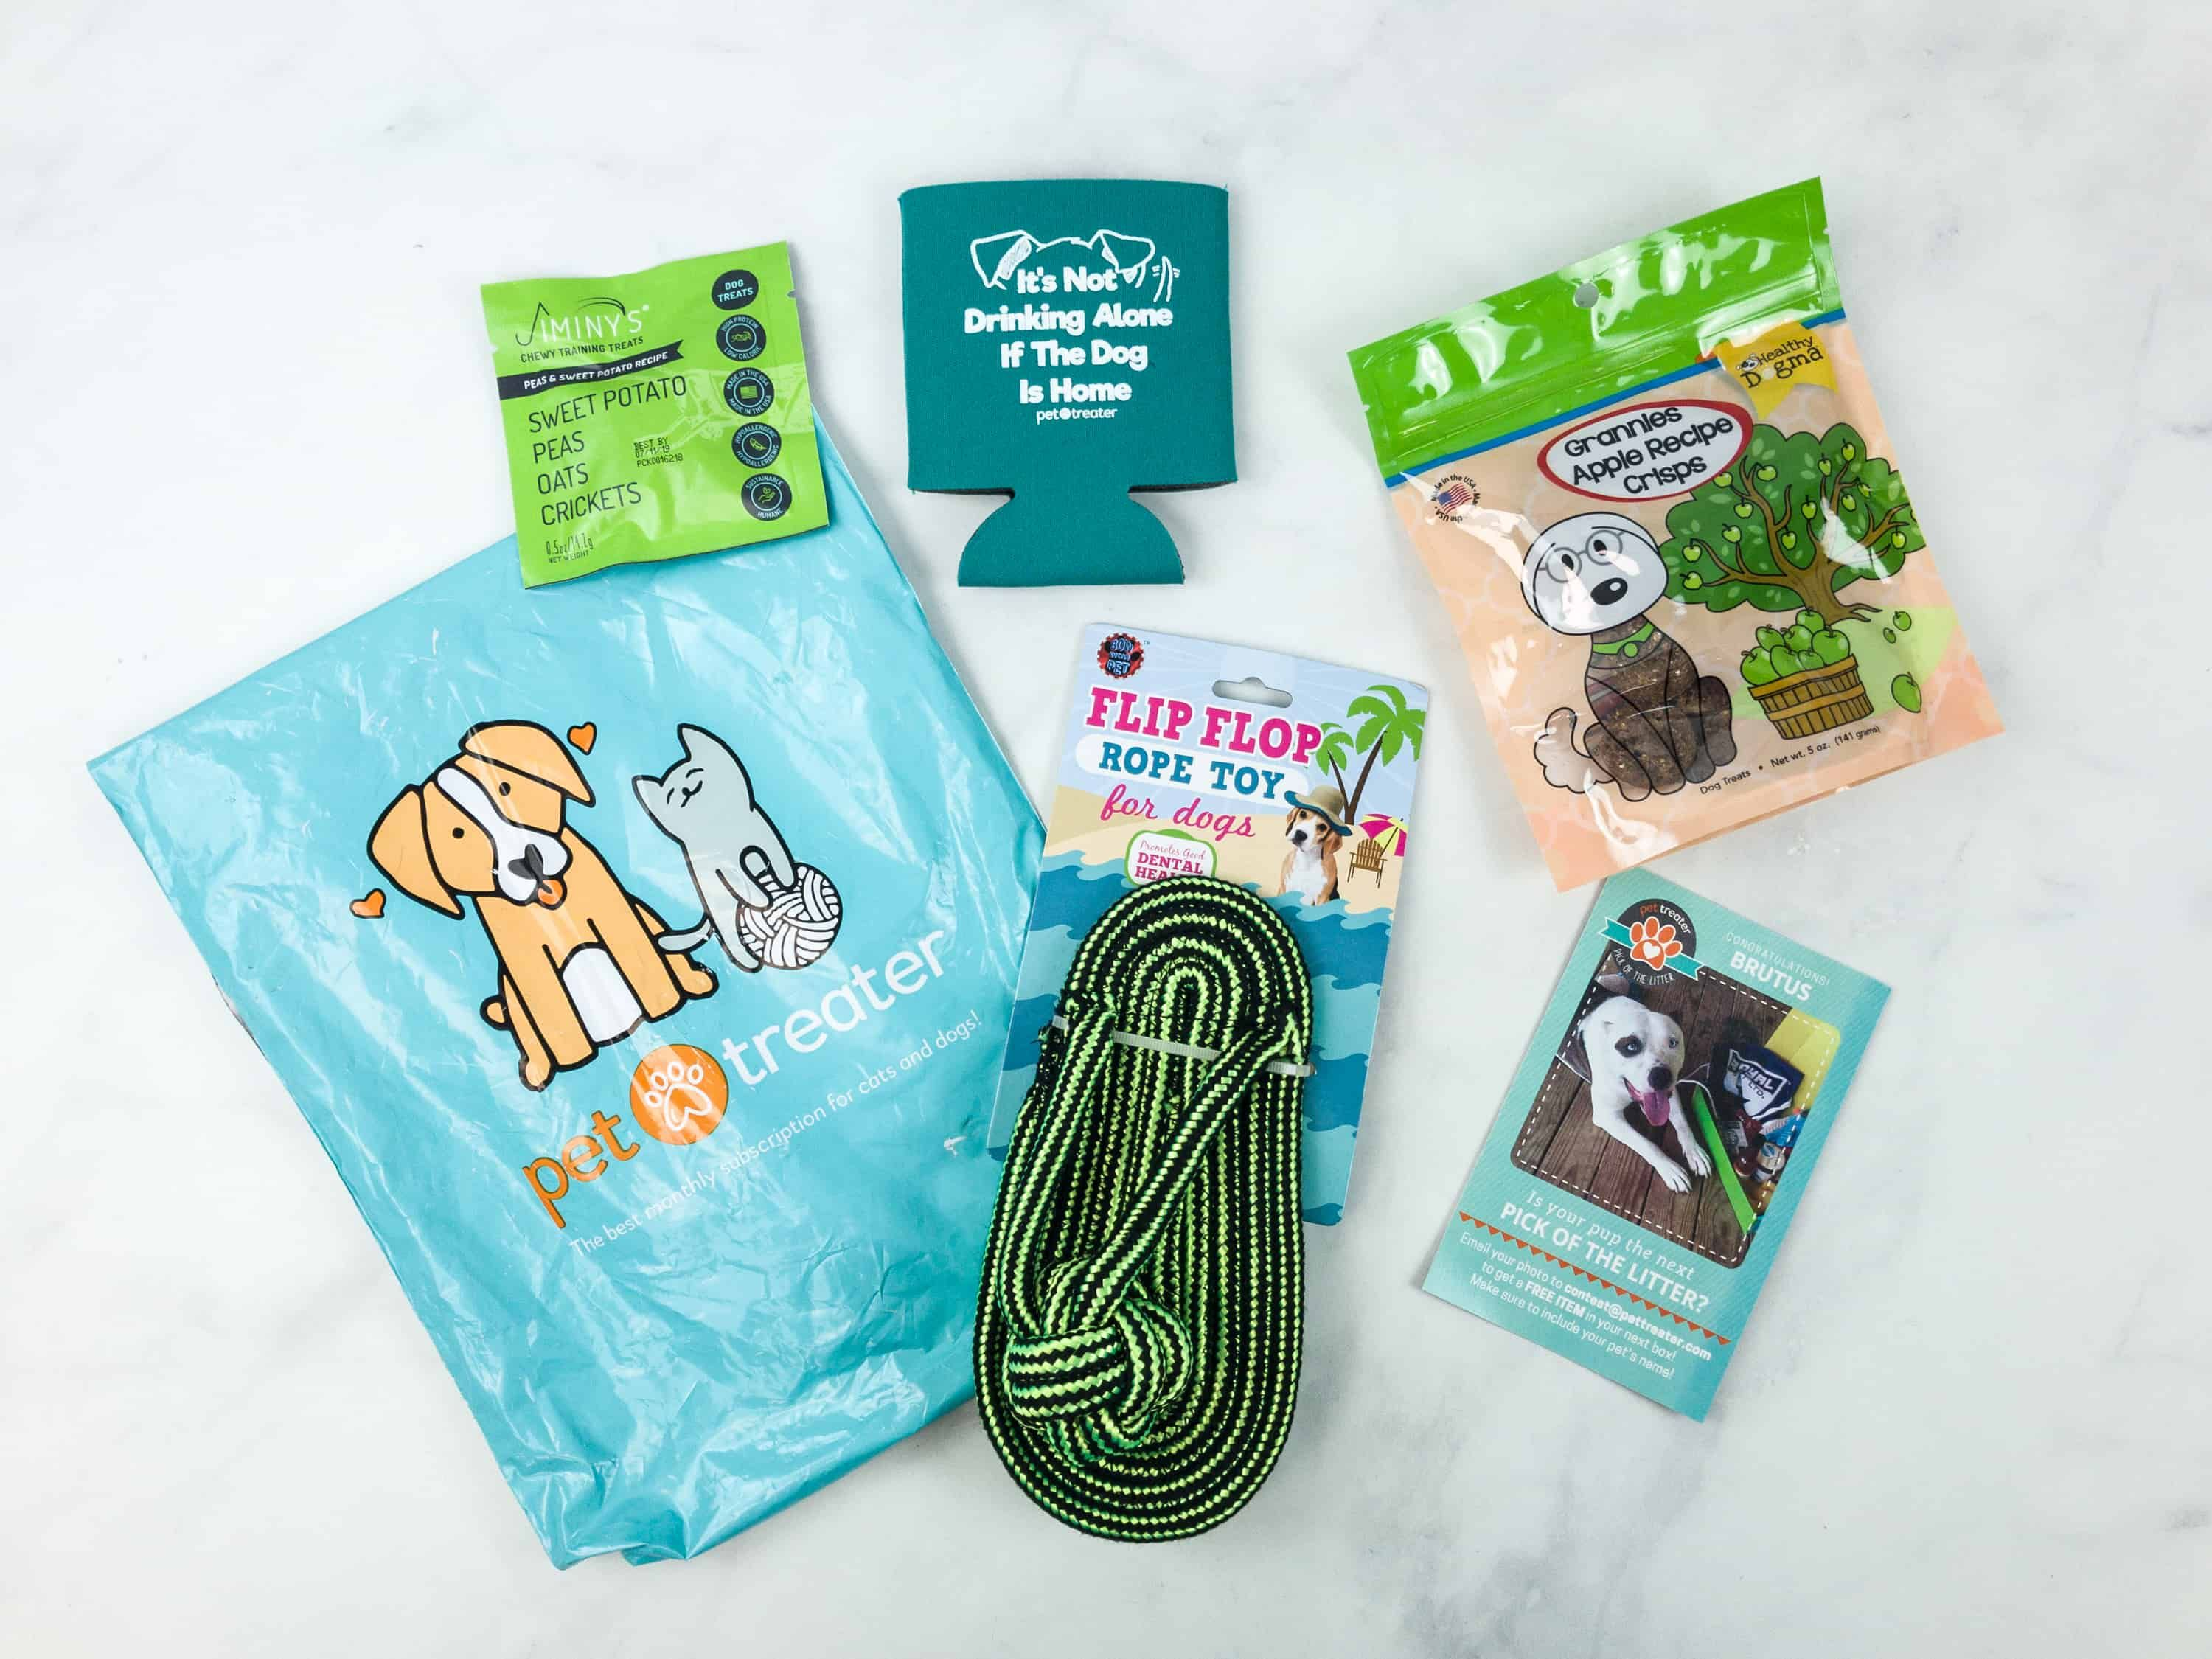 Pet Treater Dog Pack August 2018 Subscription Box Review